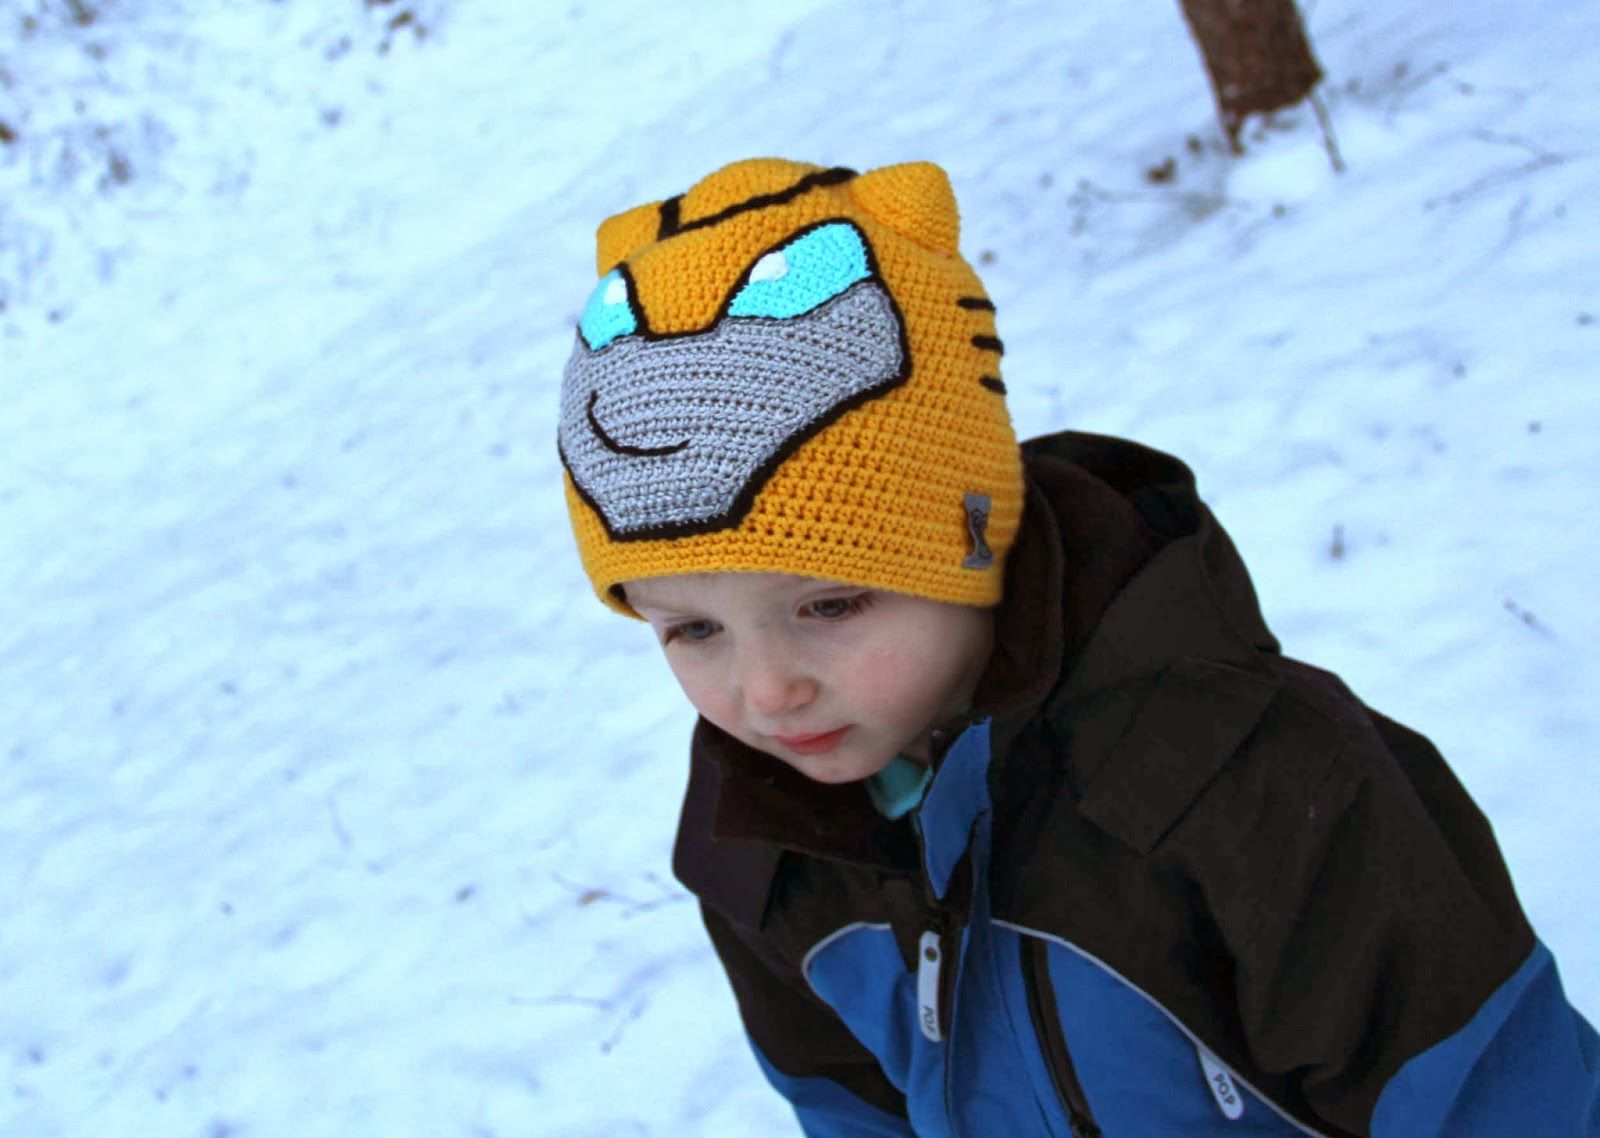 bumblebee transformers hat crochet Crochet For Boys 6ba2cbbd9fb